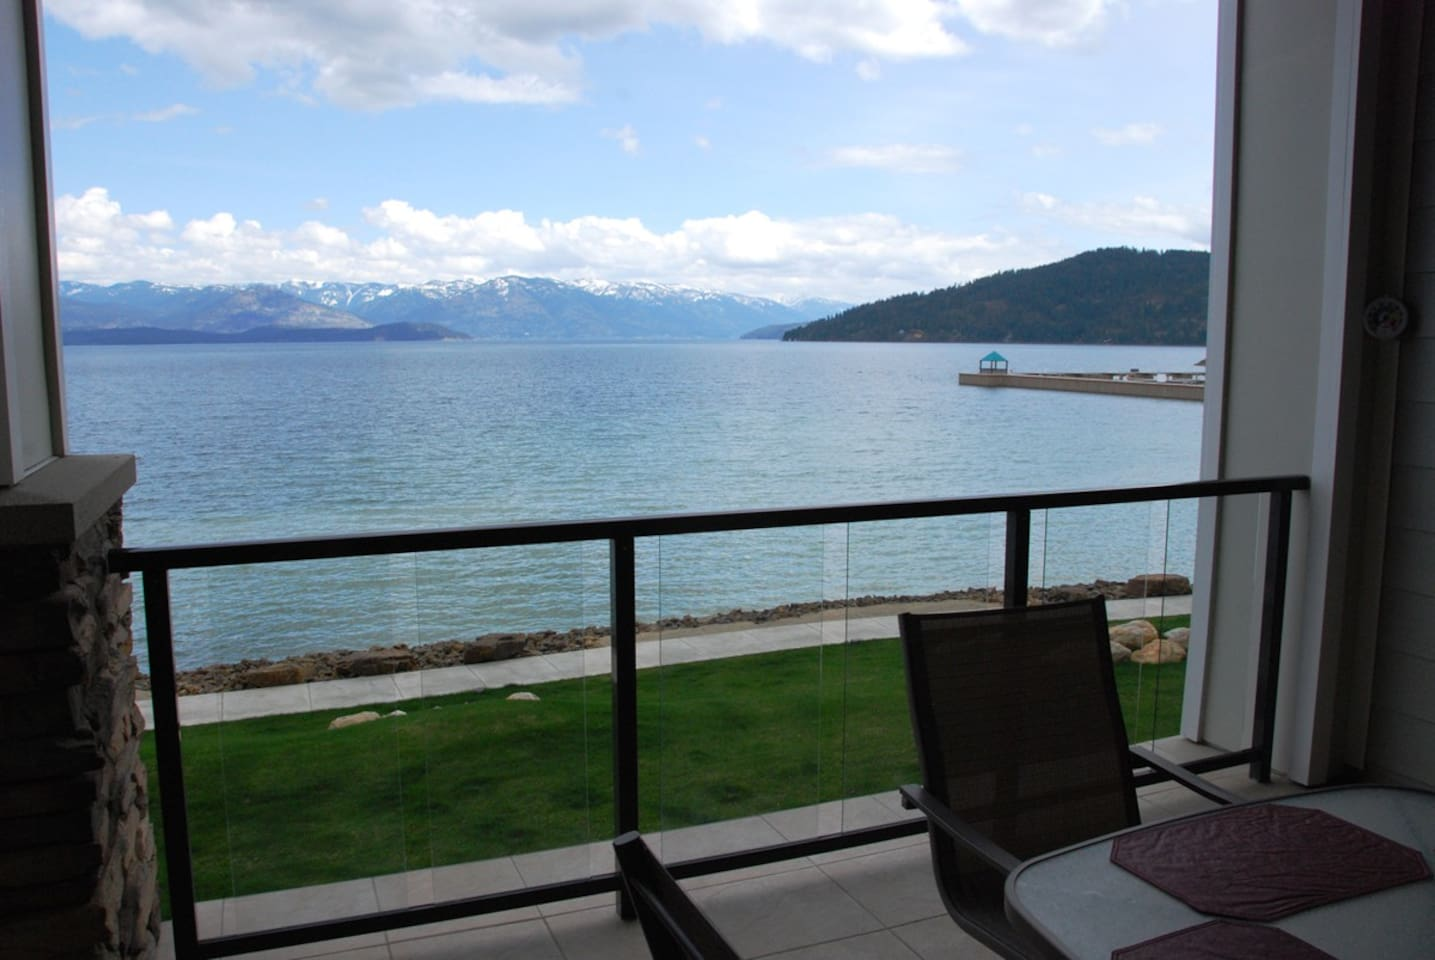 13x13 patio overlooking the lake is perfect for star gazing or having dinner with a view